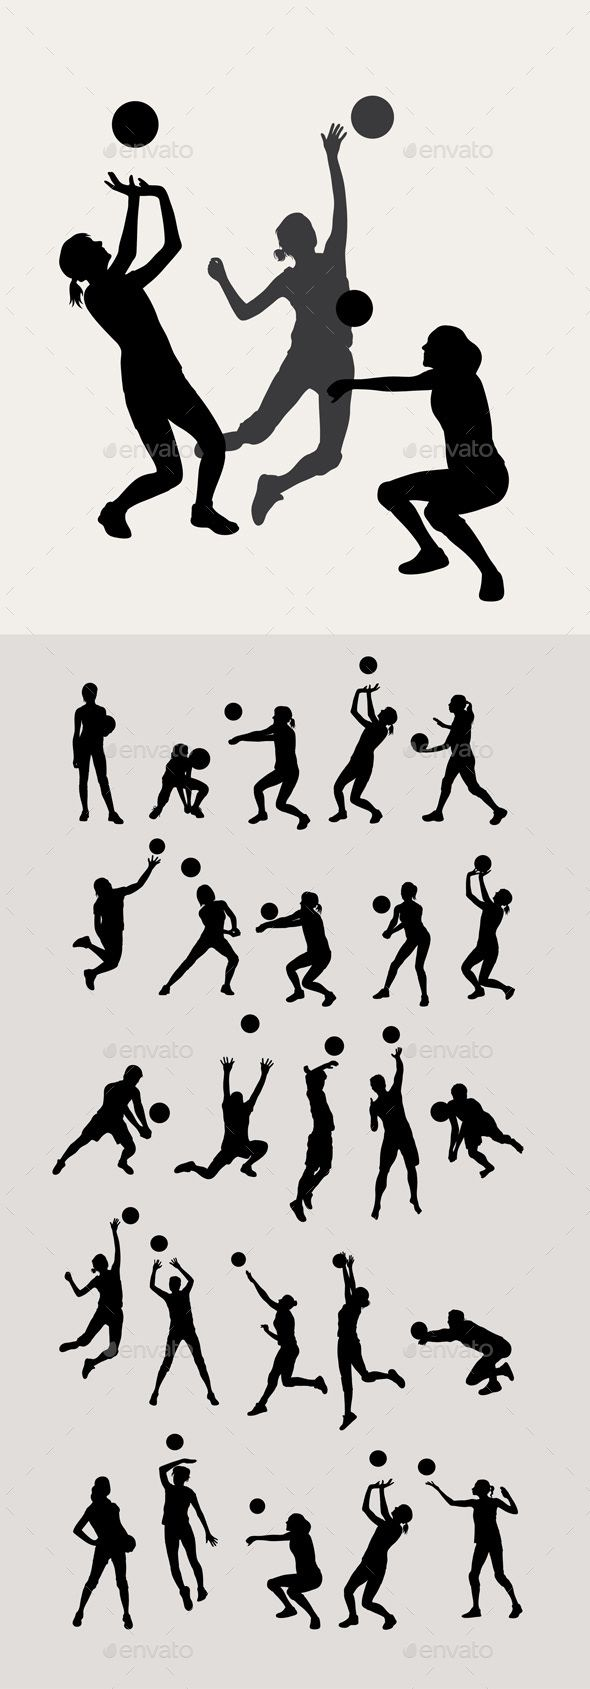 Volleyball Silhouettes Art Vector Design Ai Cs Jpeg And Eps Volleyball Silhouette Volleyball Poses Volleyball